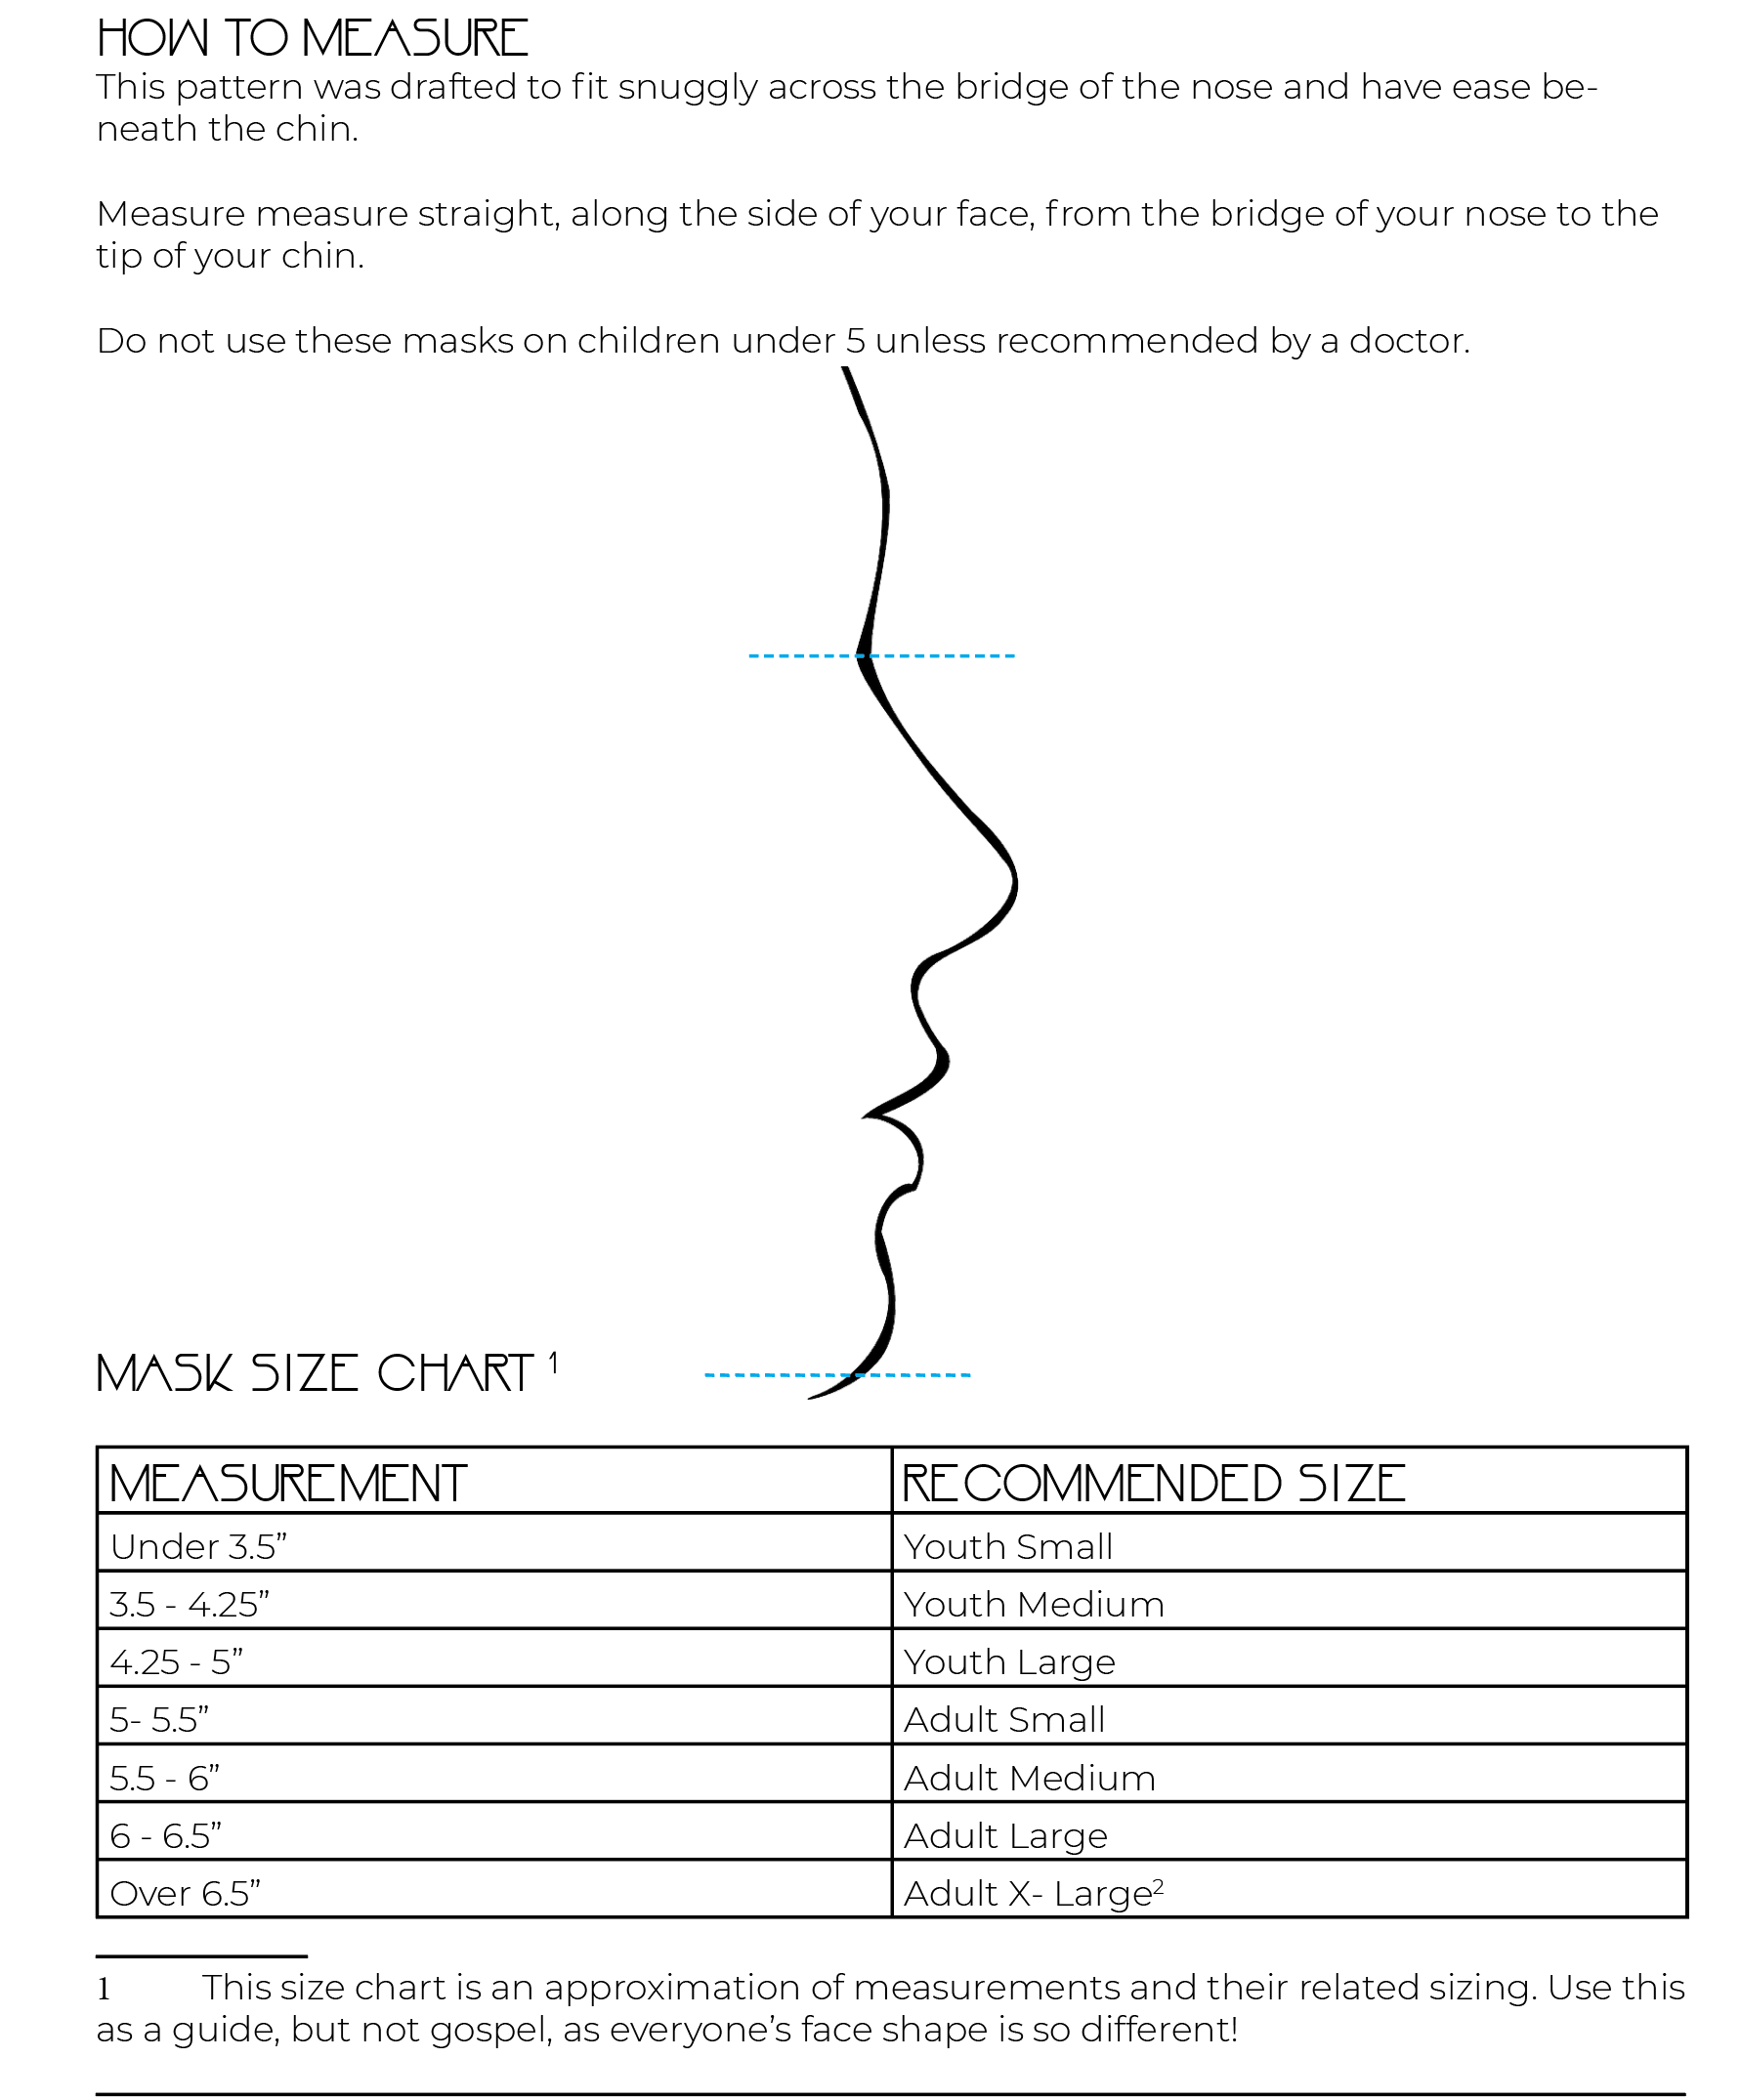 Mask measuring chart.